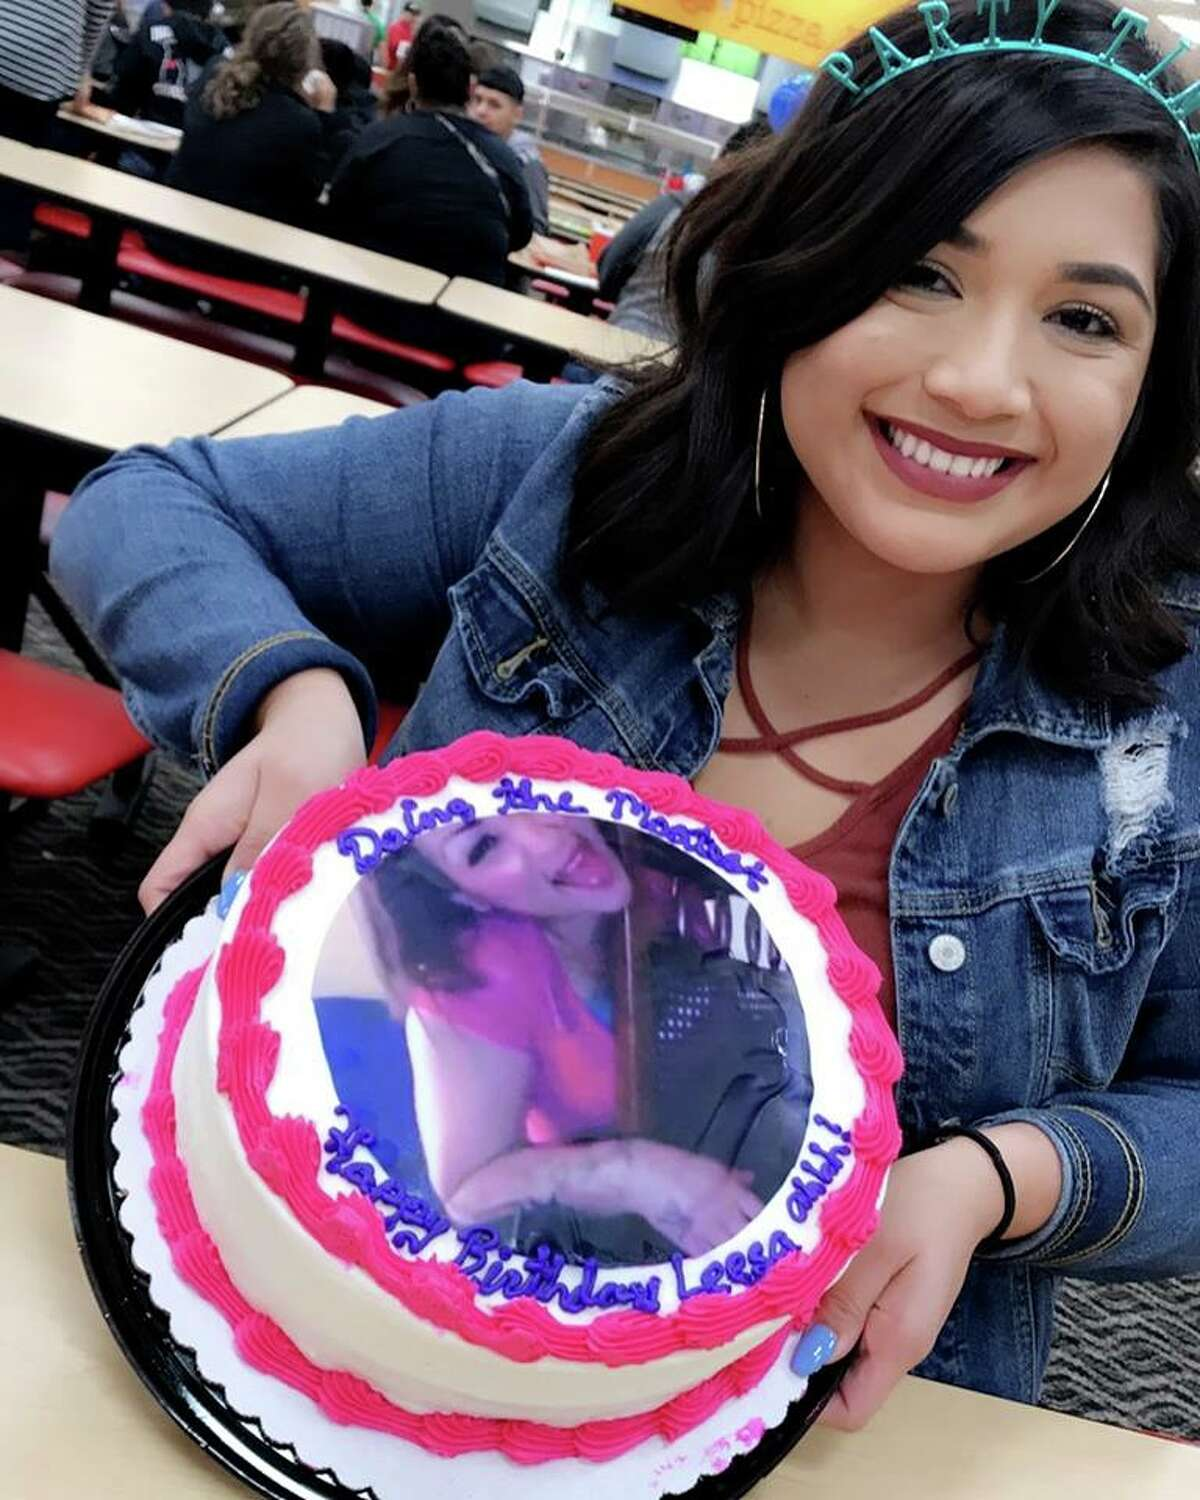 Leesa Perez blew out 20 candles atop a Senitva-themed cake at Peter Piper's Pizza on Tuesday.